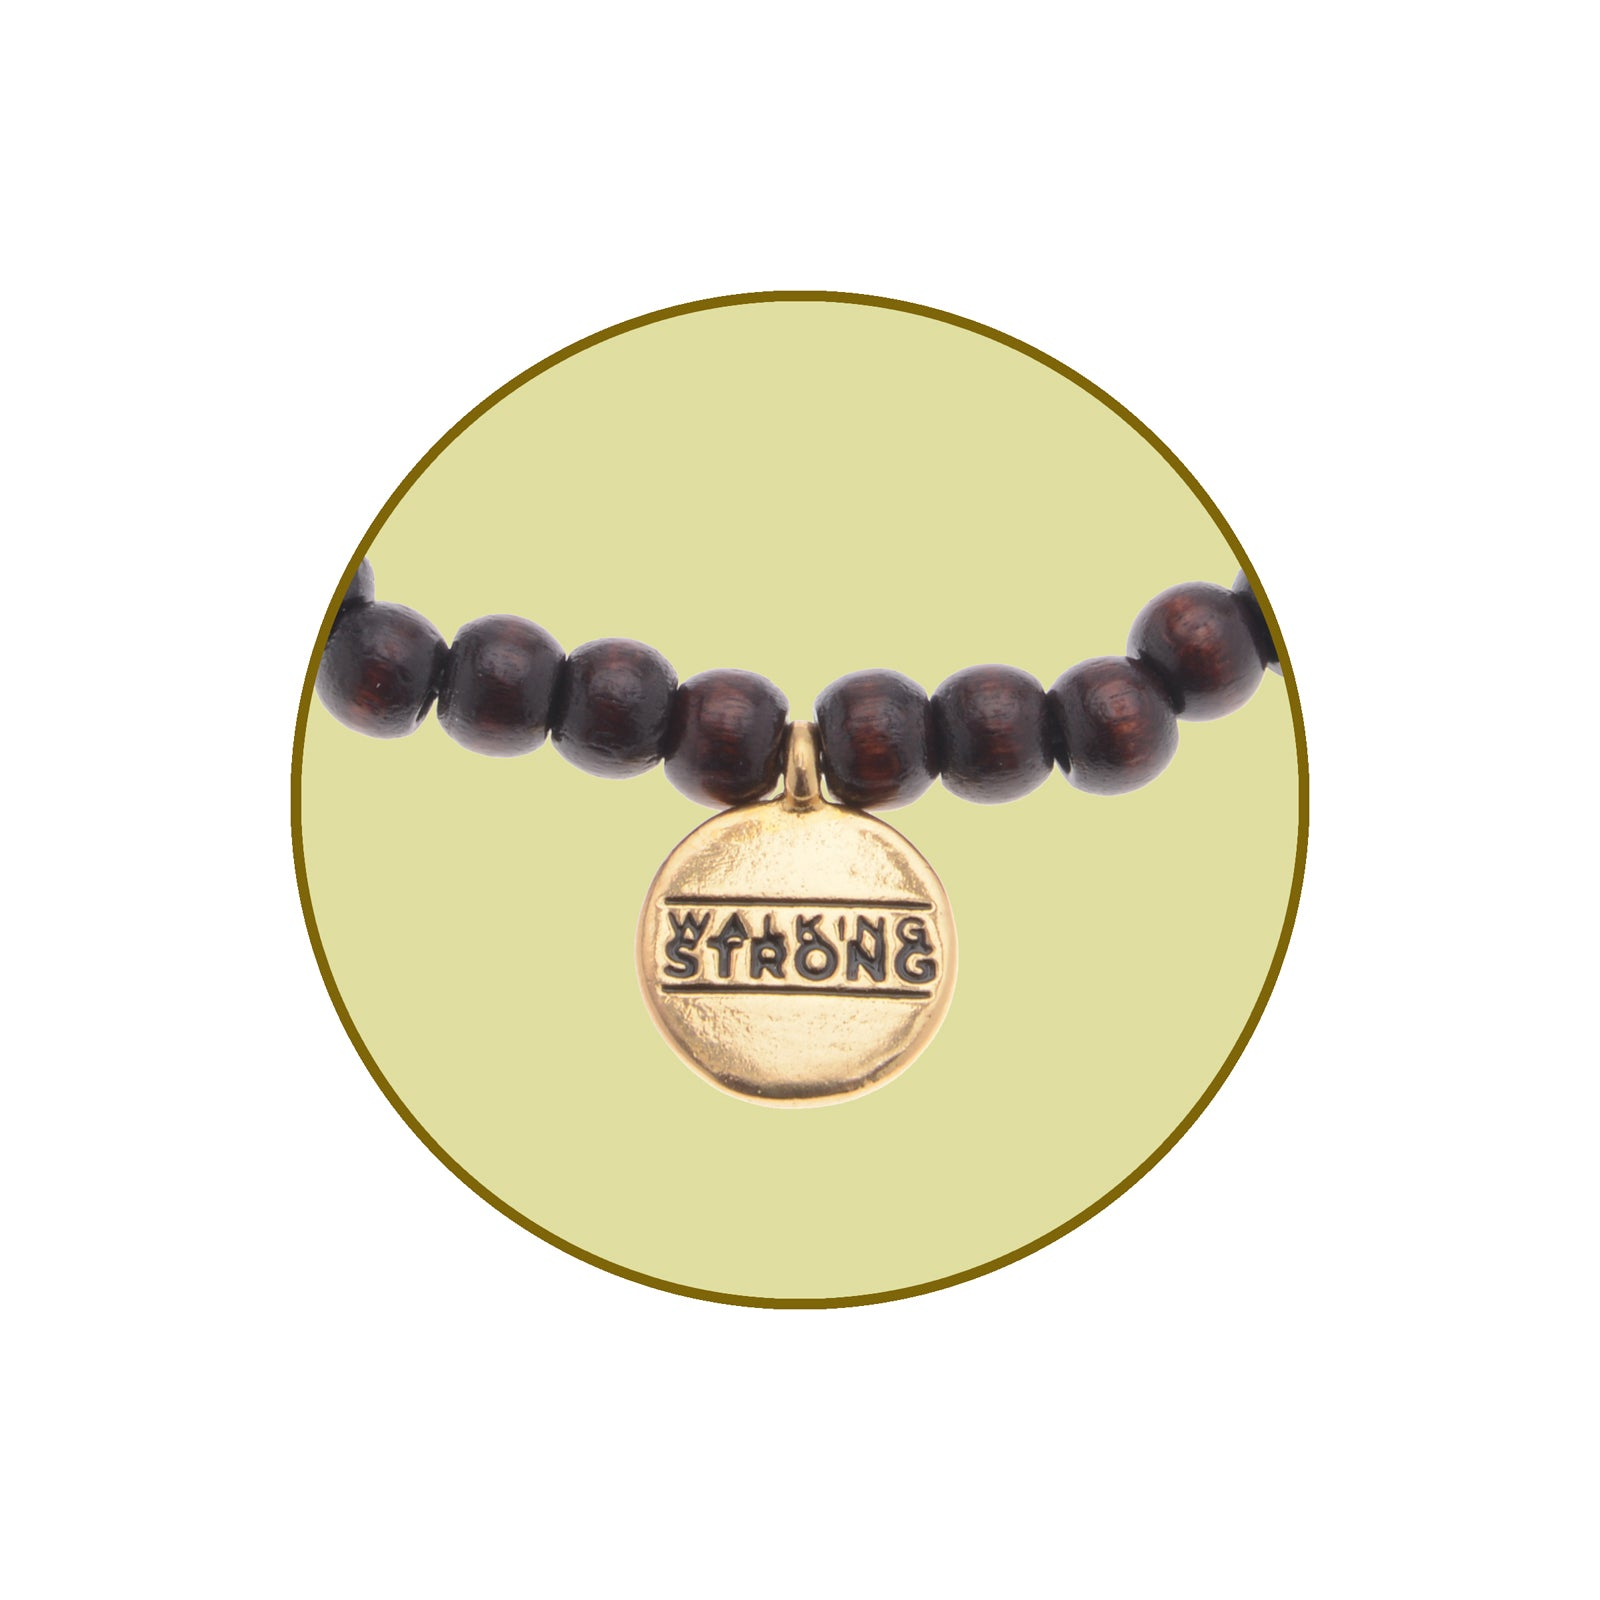 Walking Strong Bracelet - Small Black Wood Beads